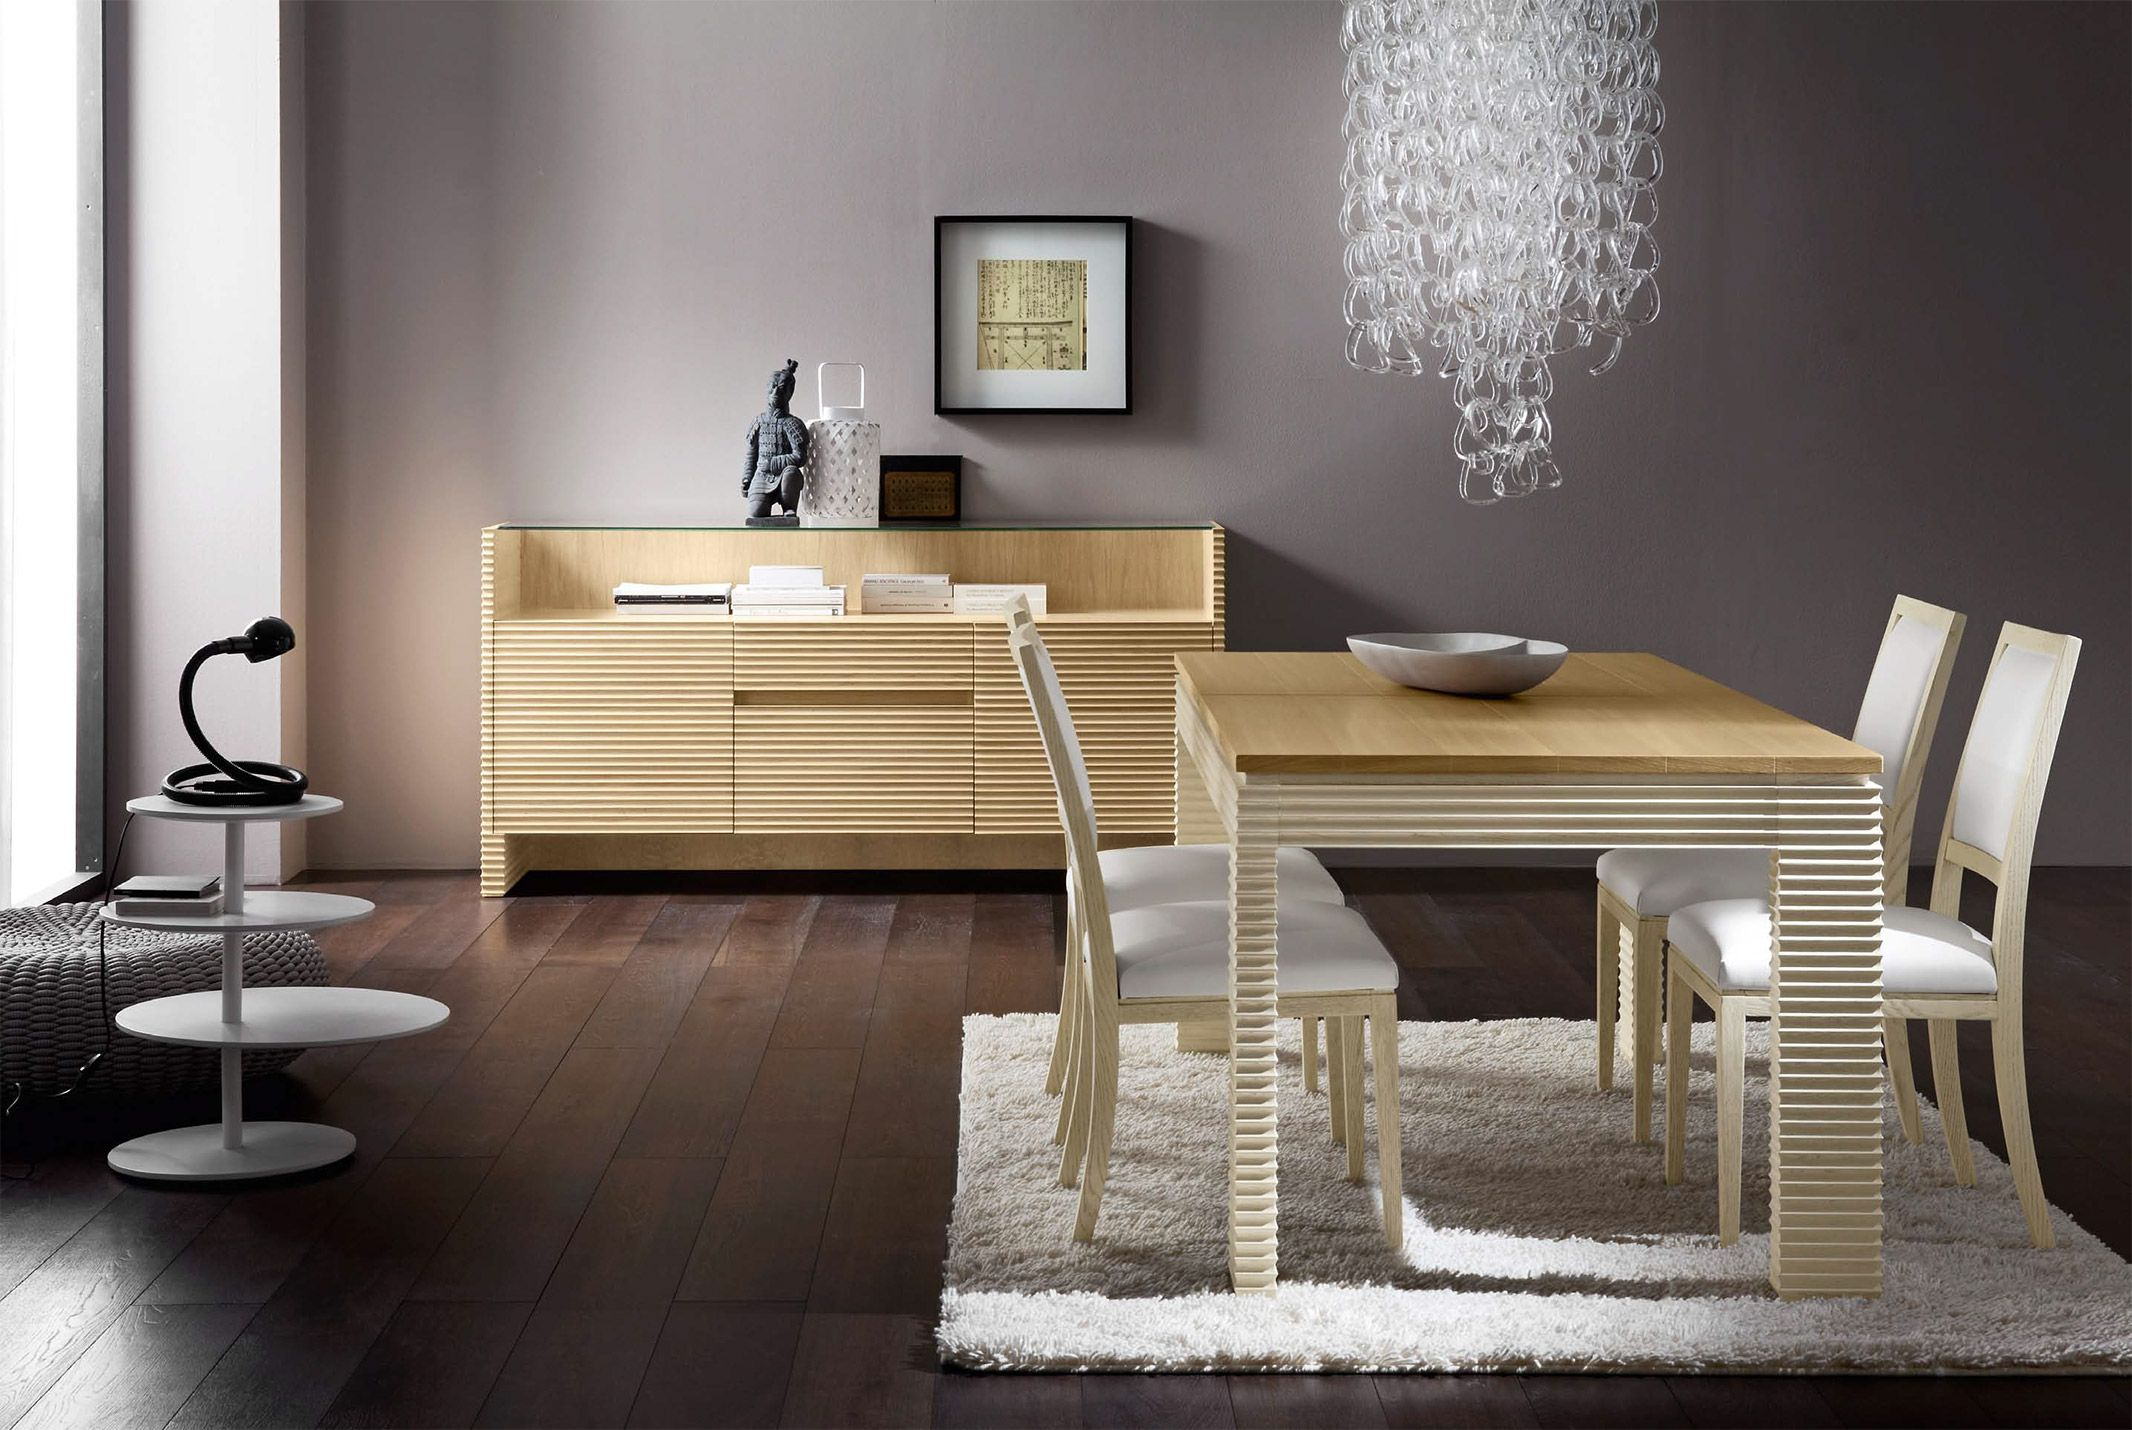 Bamax - Classical furniture made in Italy | Collections ...